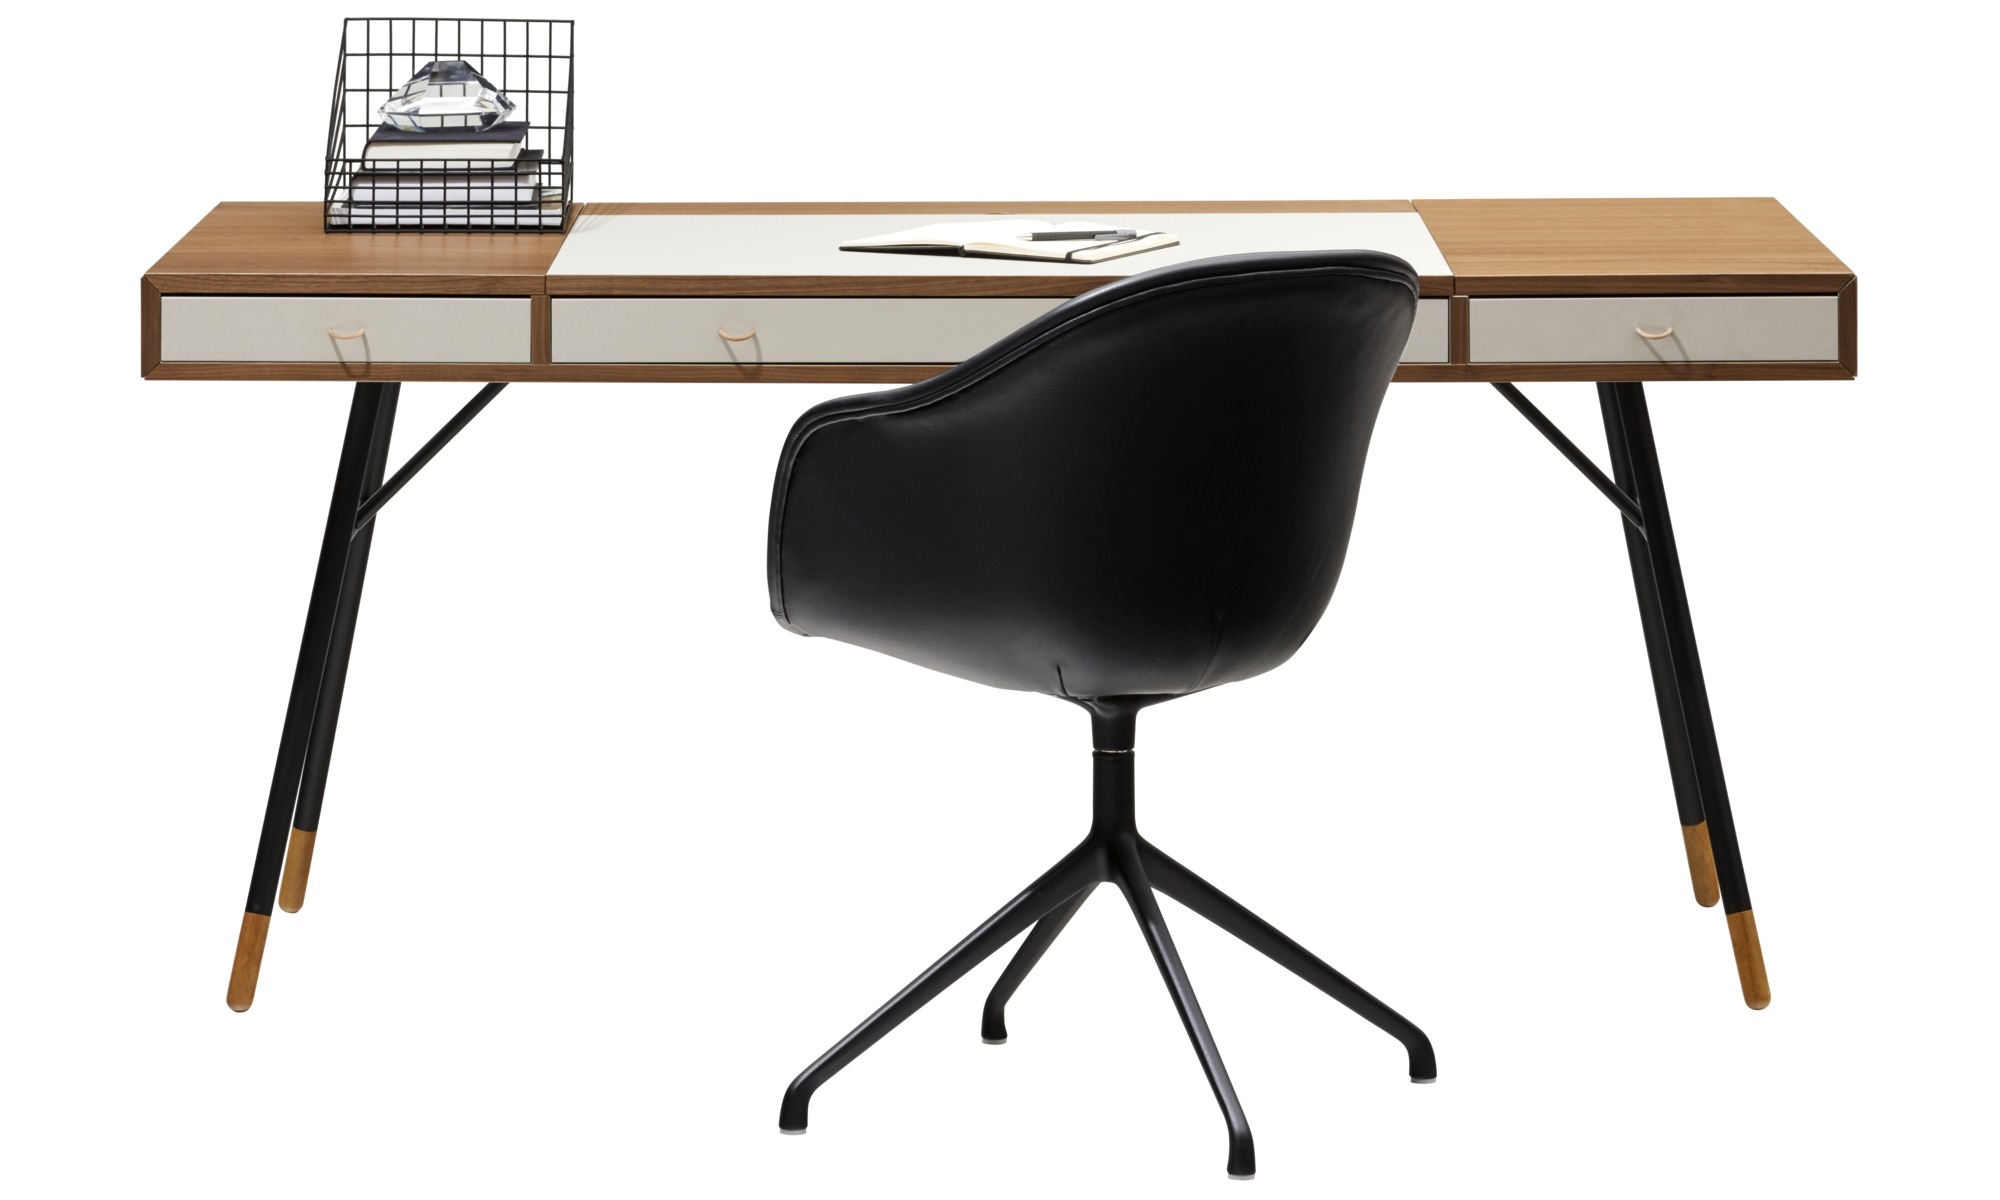 Desks cupertino desk boconcept for Bo concept